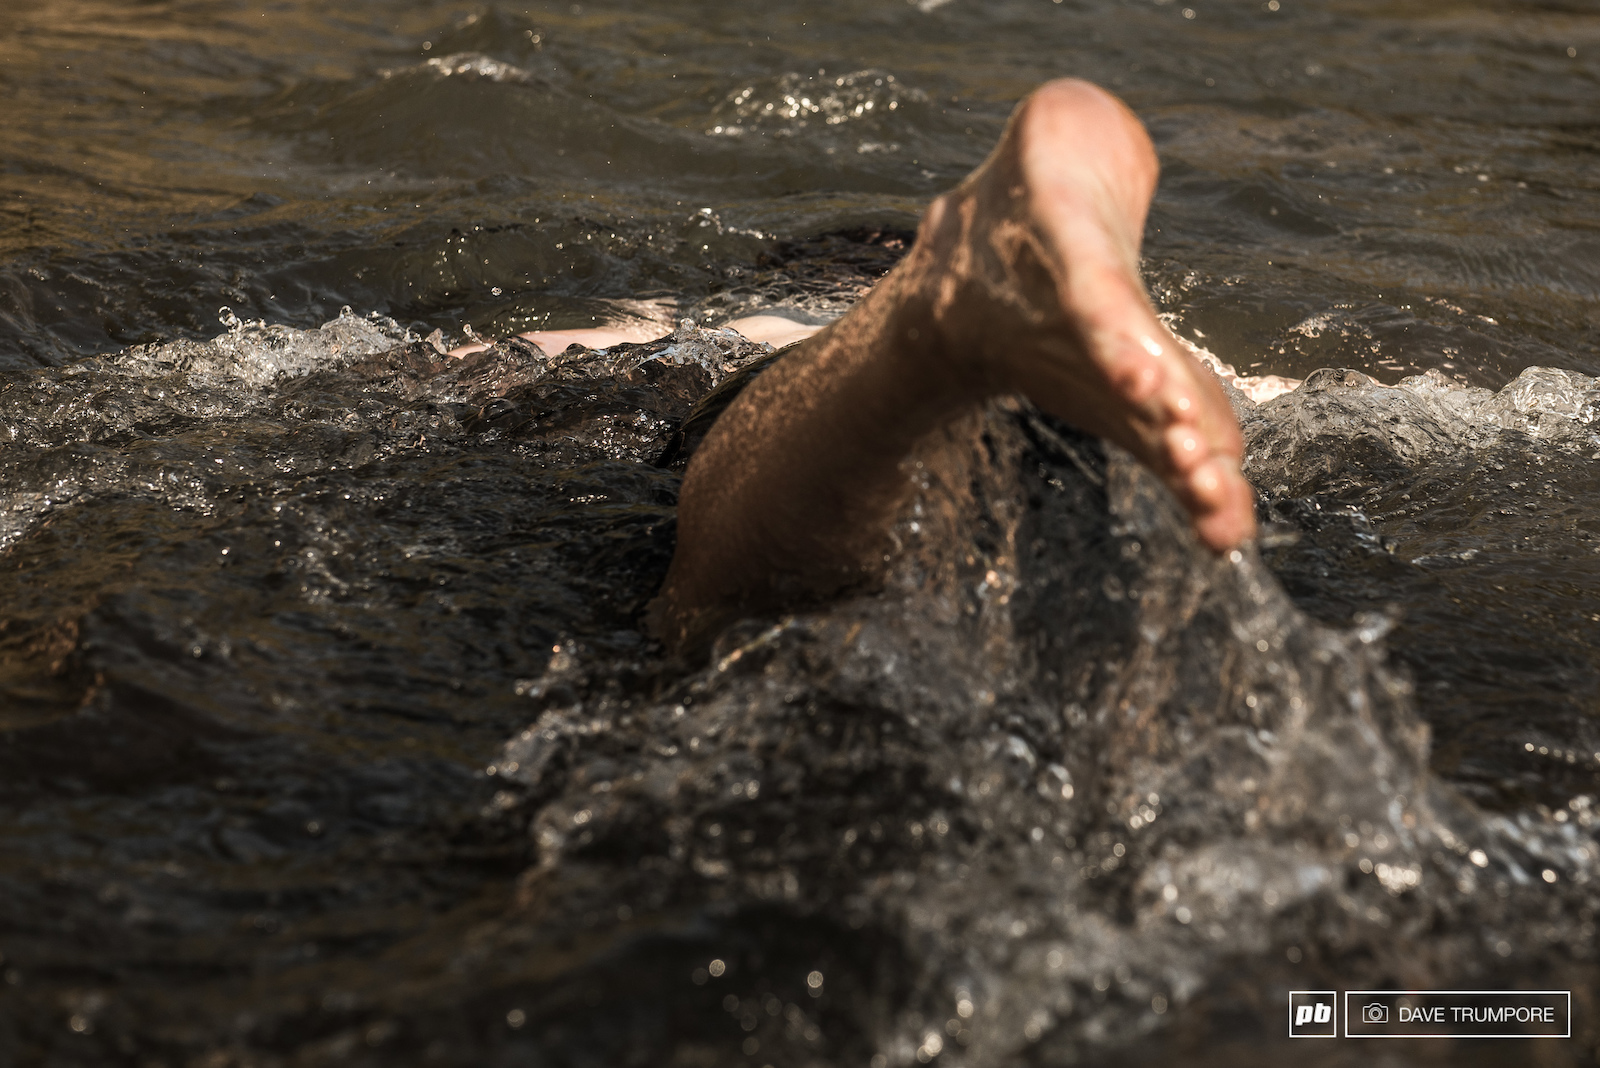 Cold swims in the river are an essential end of day activity in the scorching summer heat.